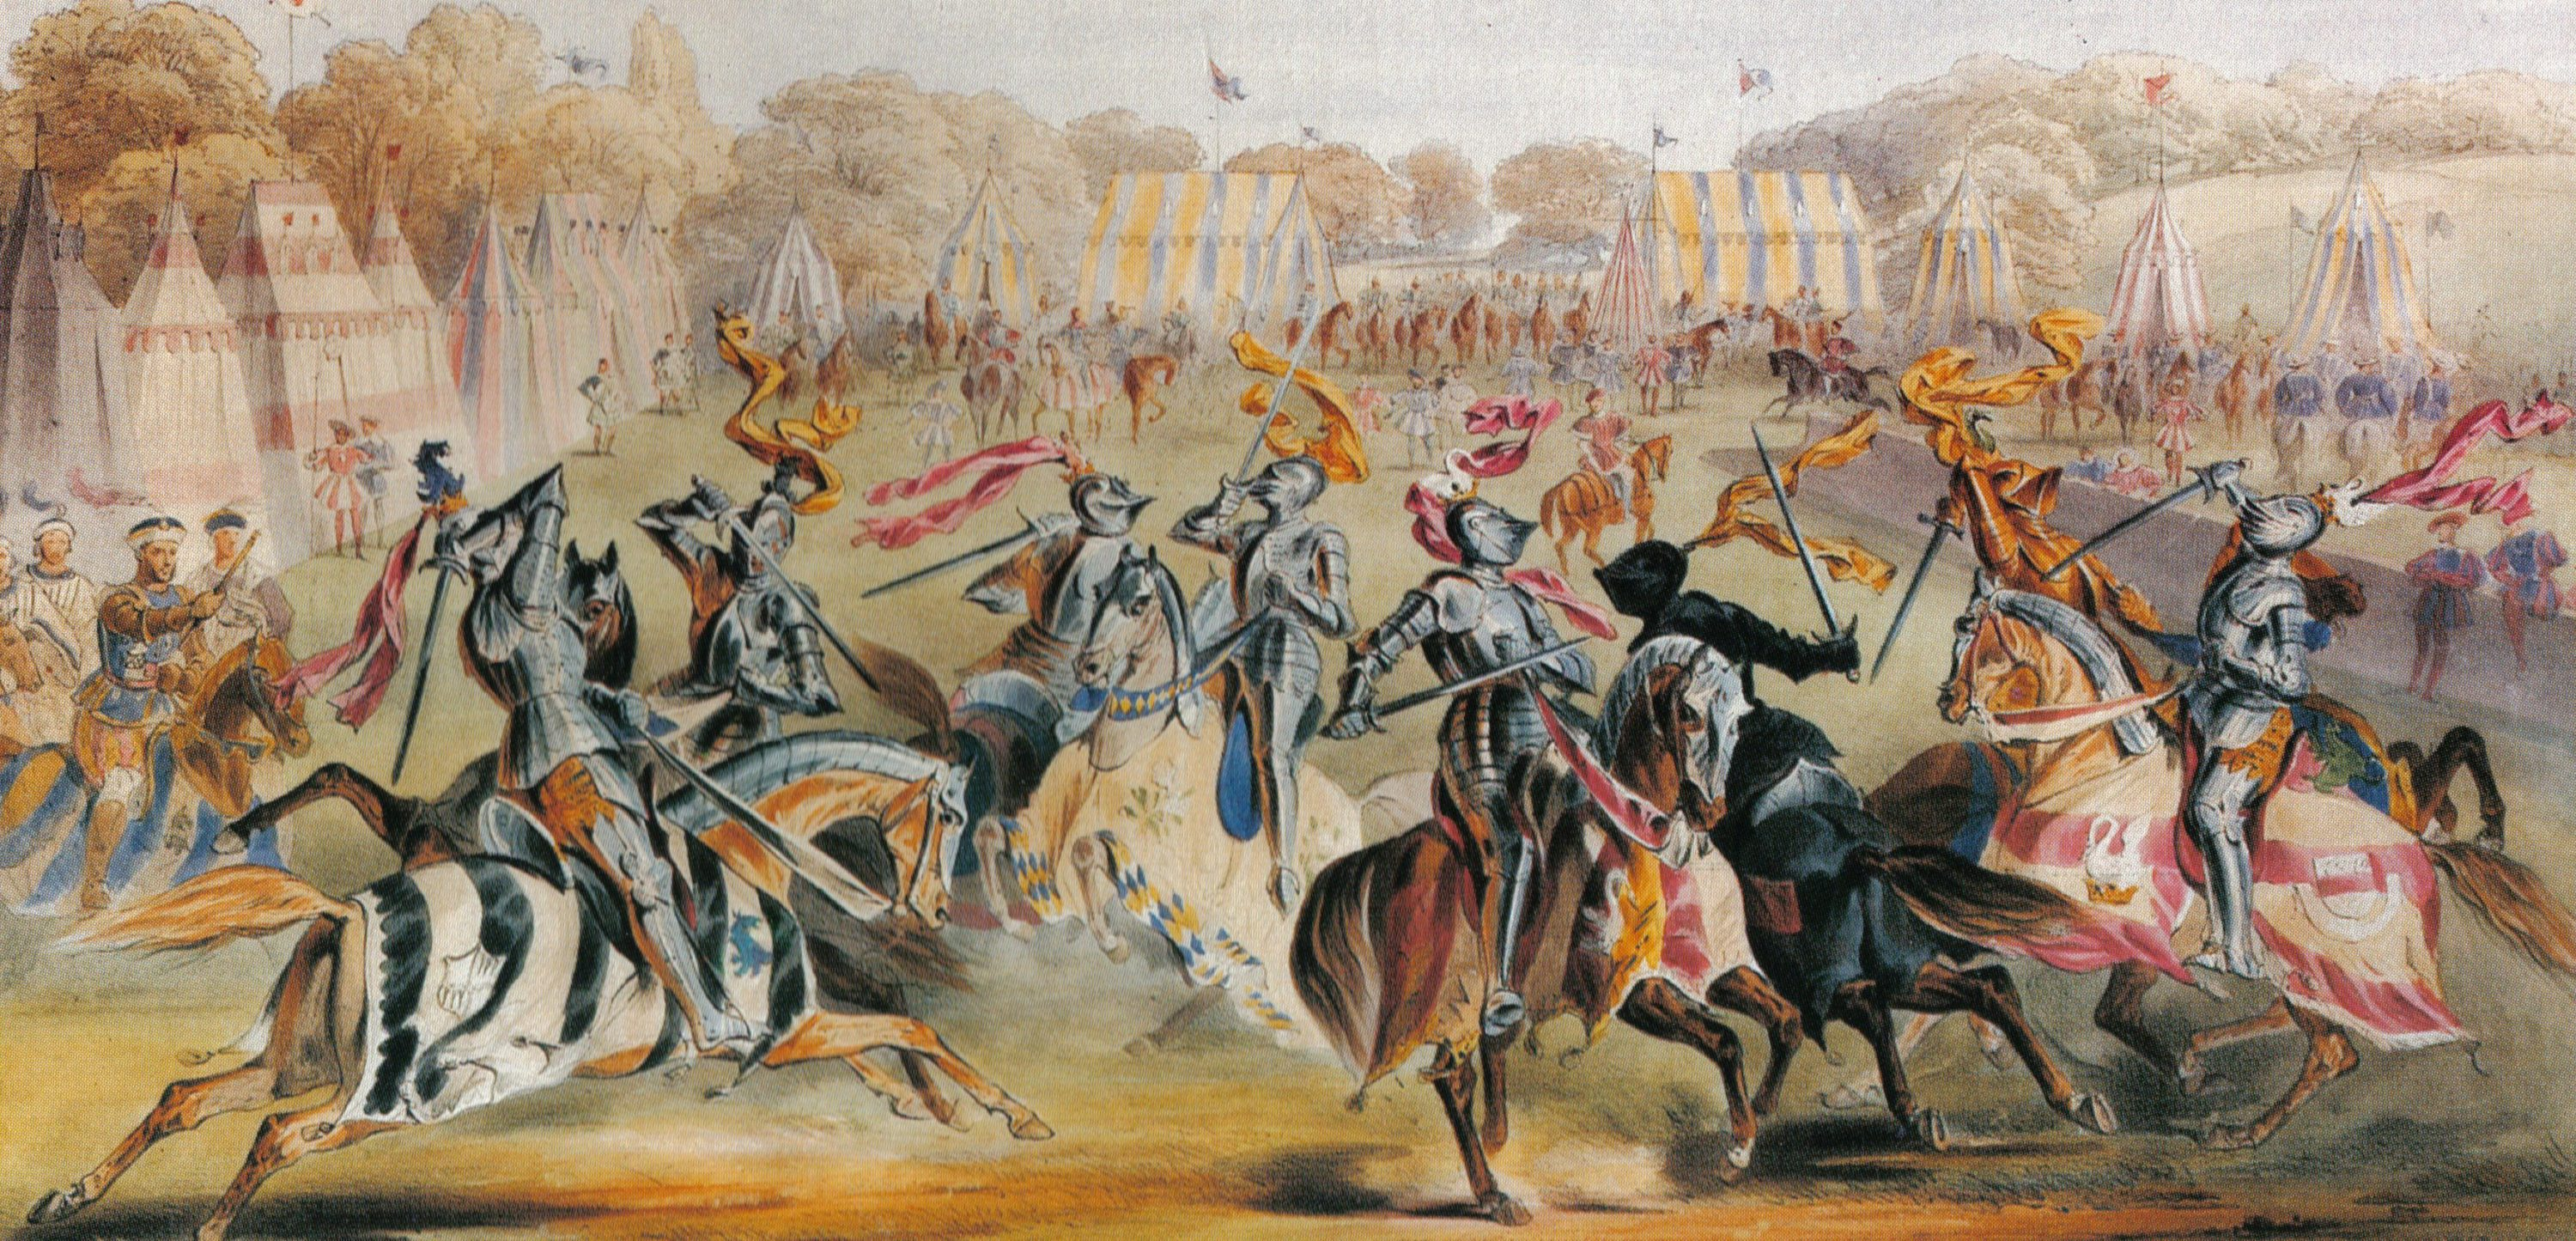 knights fighting in a medieval tournament